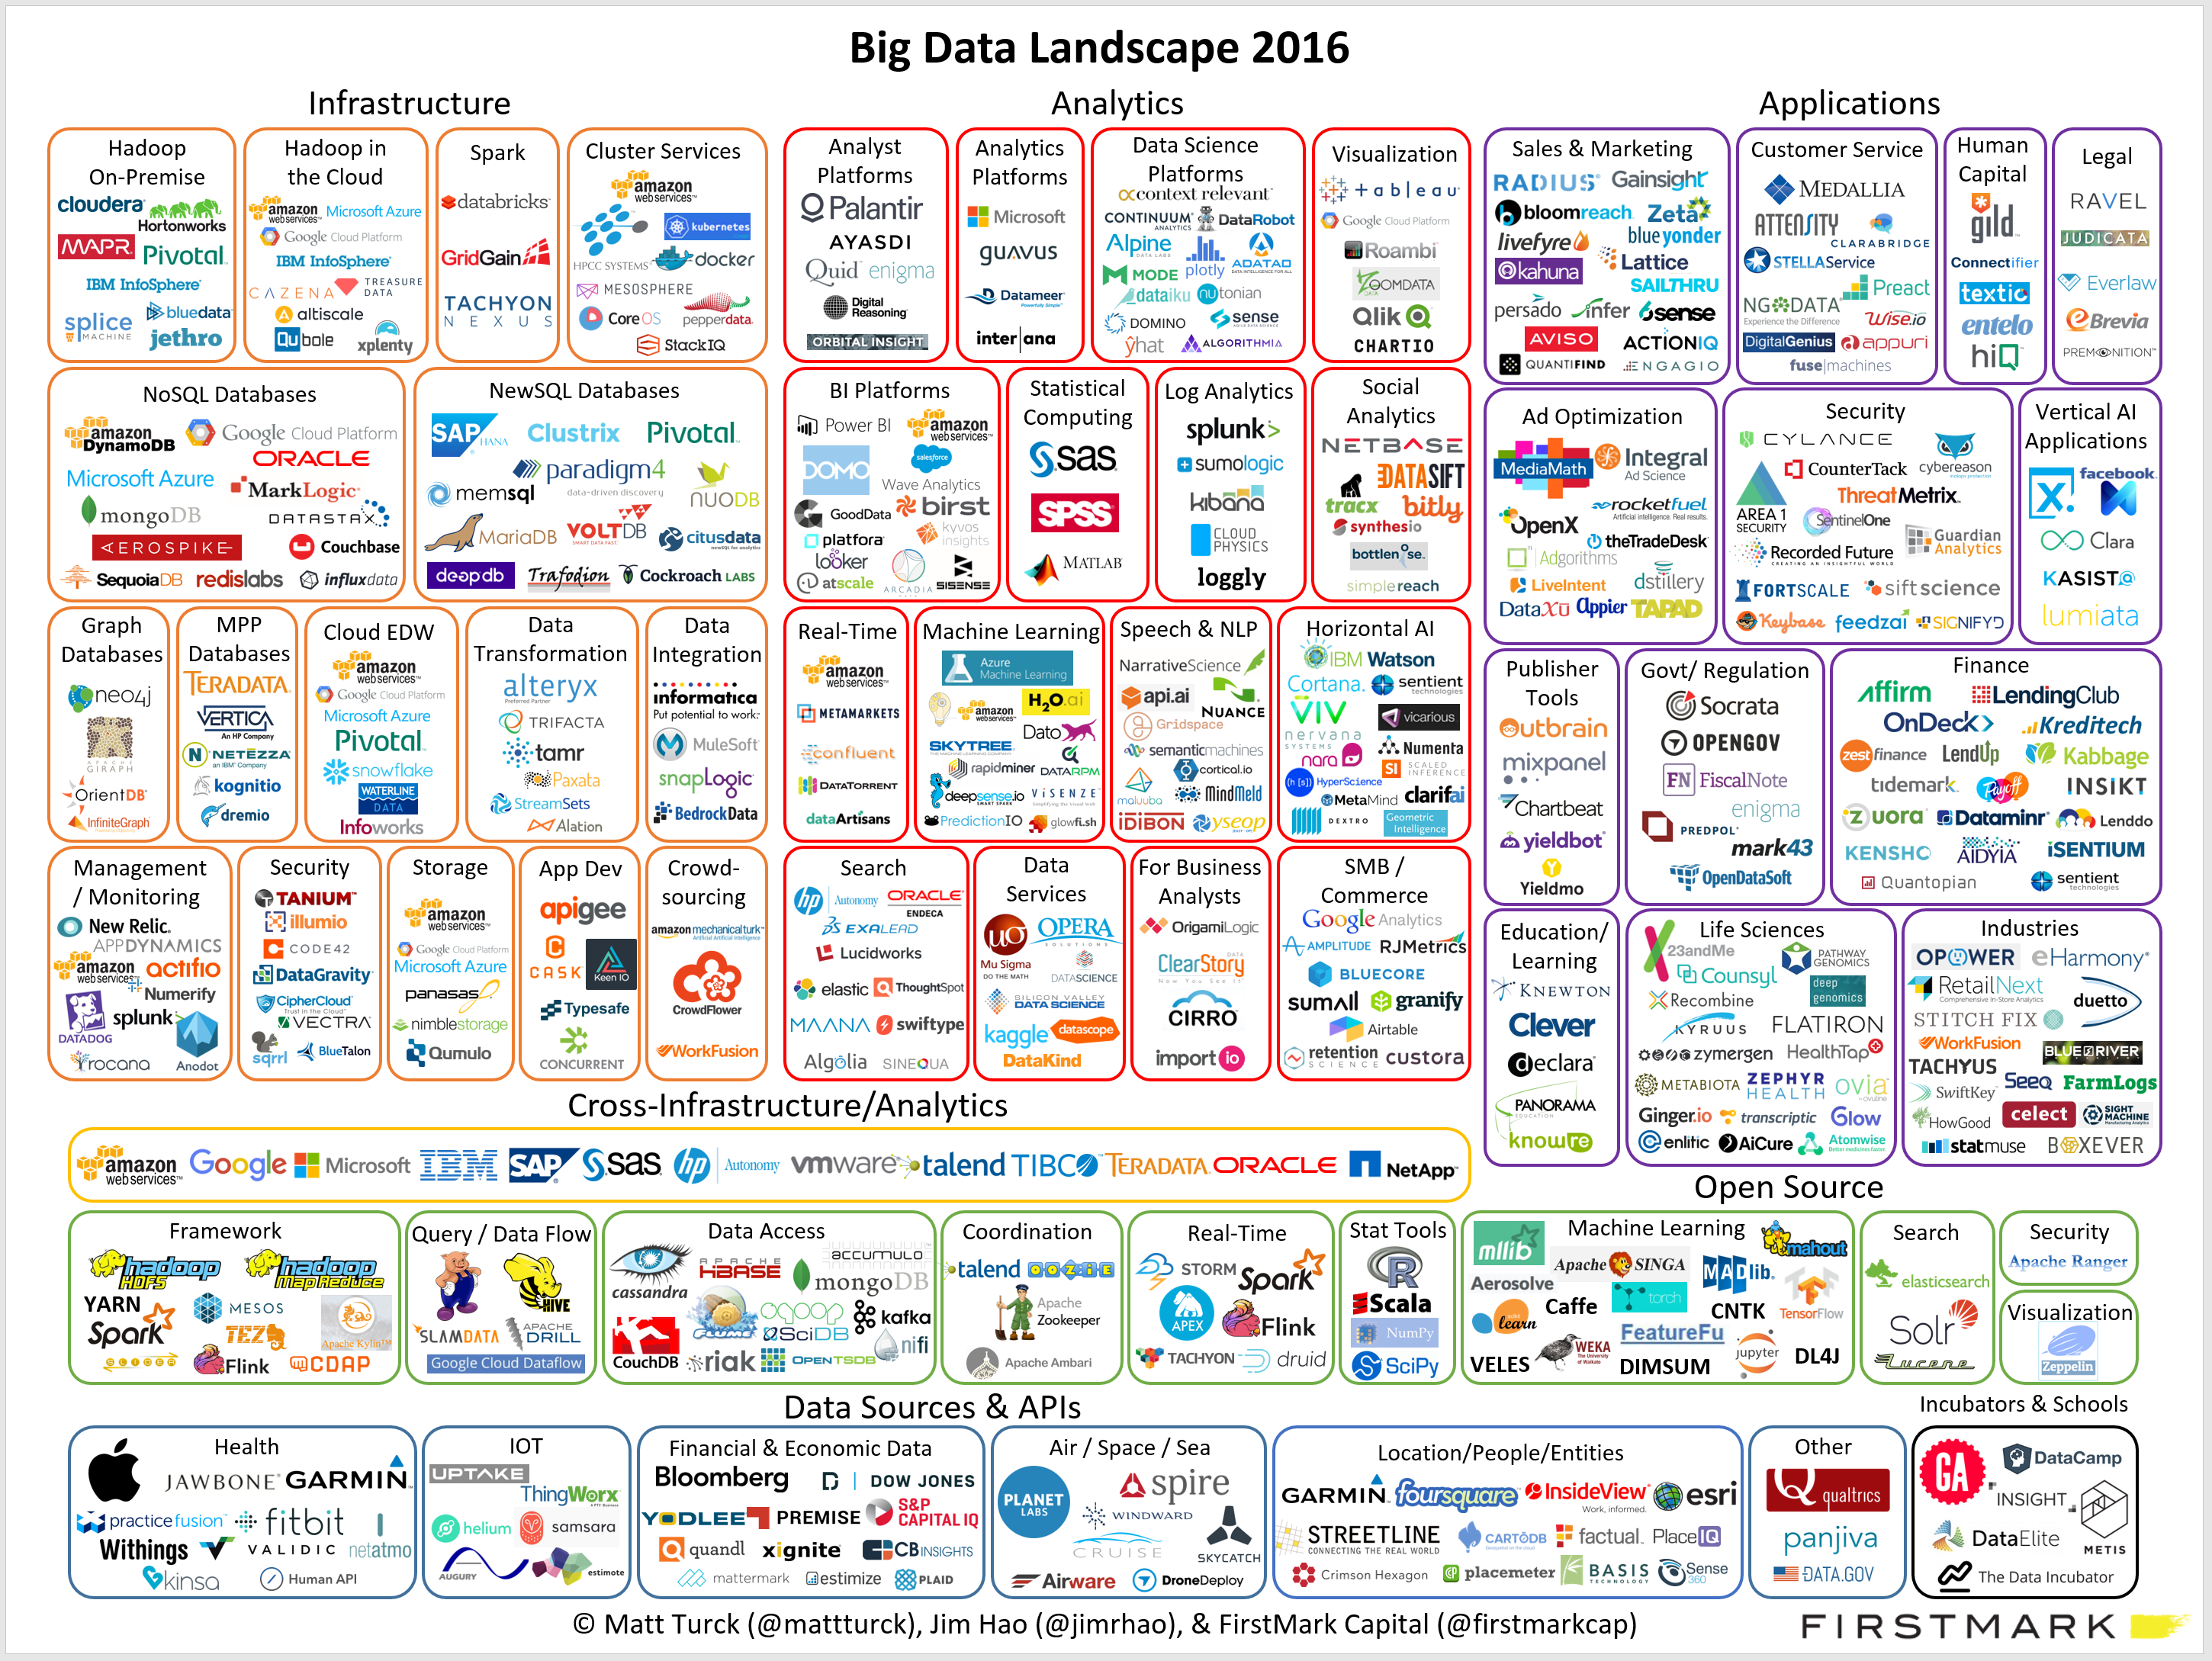 matt_turck_big_data_landscape_full